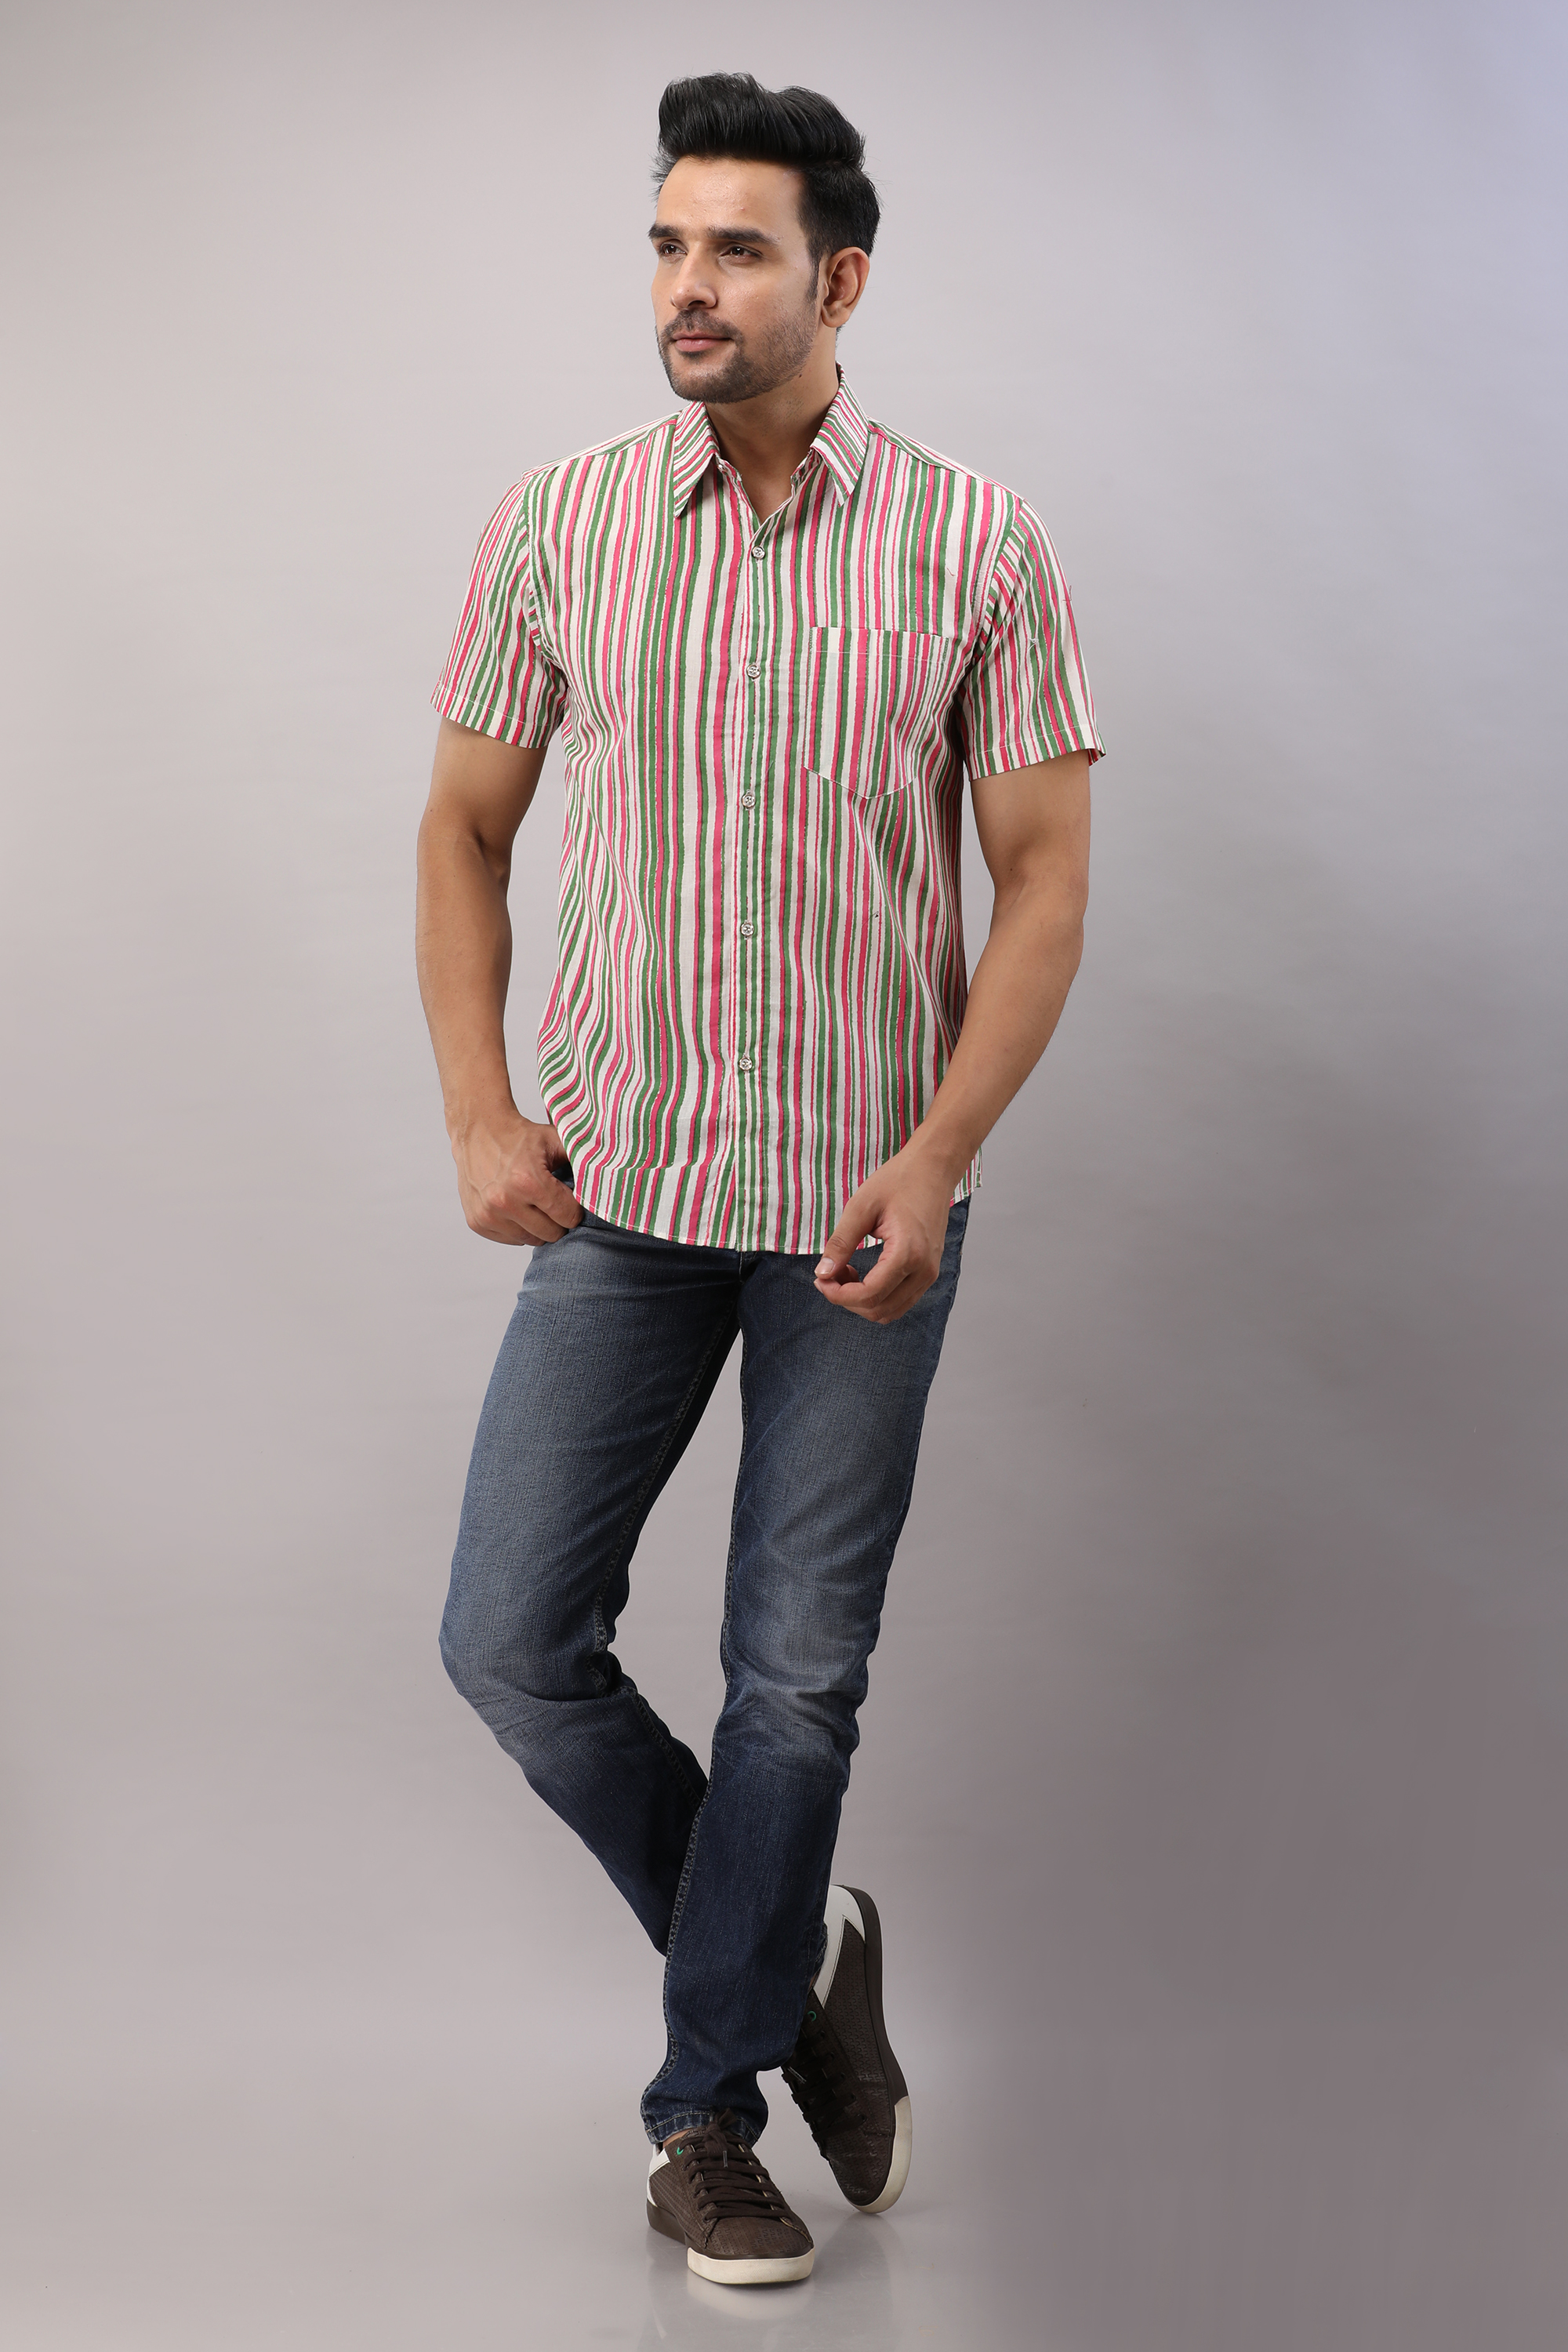 FrionKandy Cotton Striped Casual Multicolored Regular Shirt For Men - 3XL